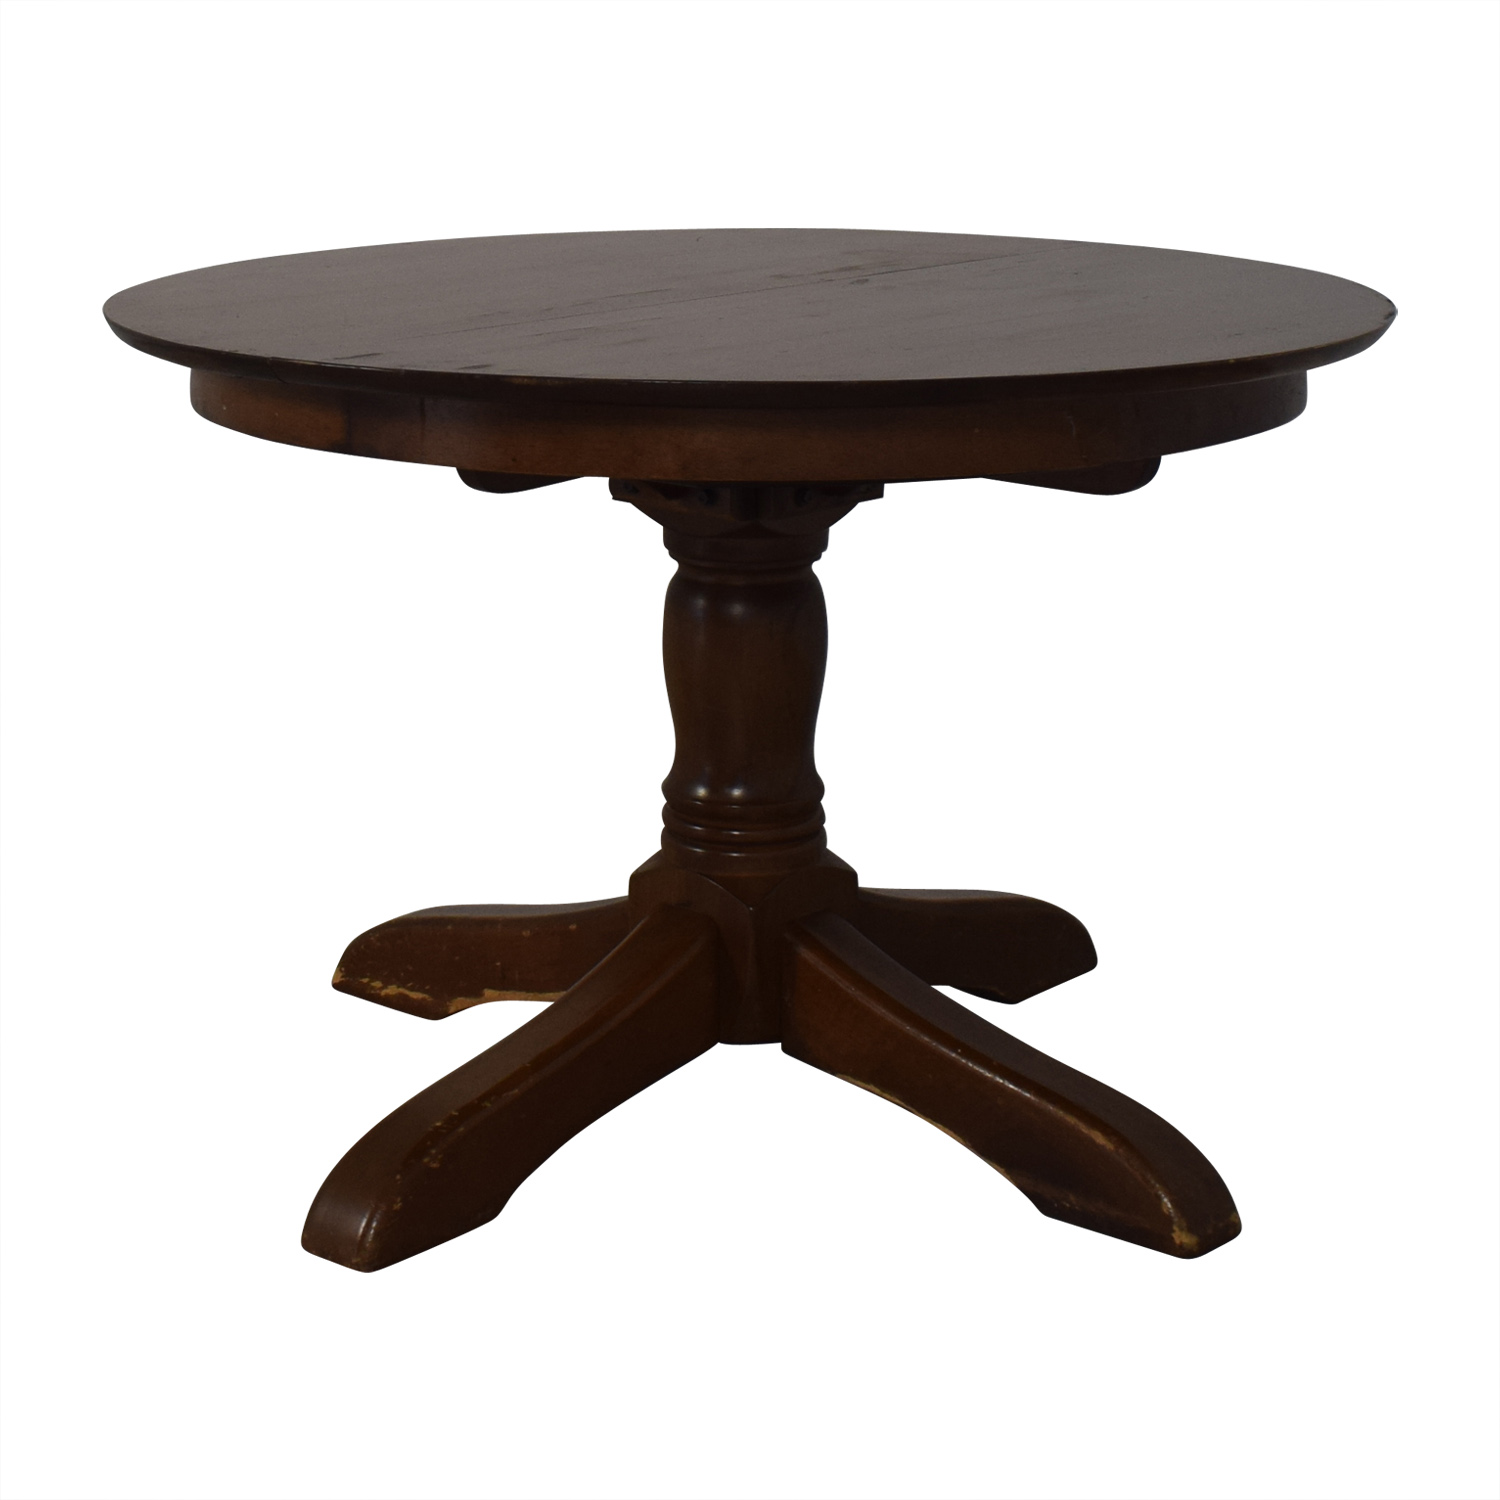 Pottery Barn Pottery Barn Extendable Round Dining Table coupon